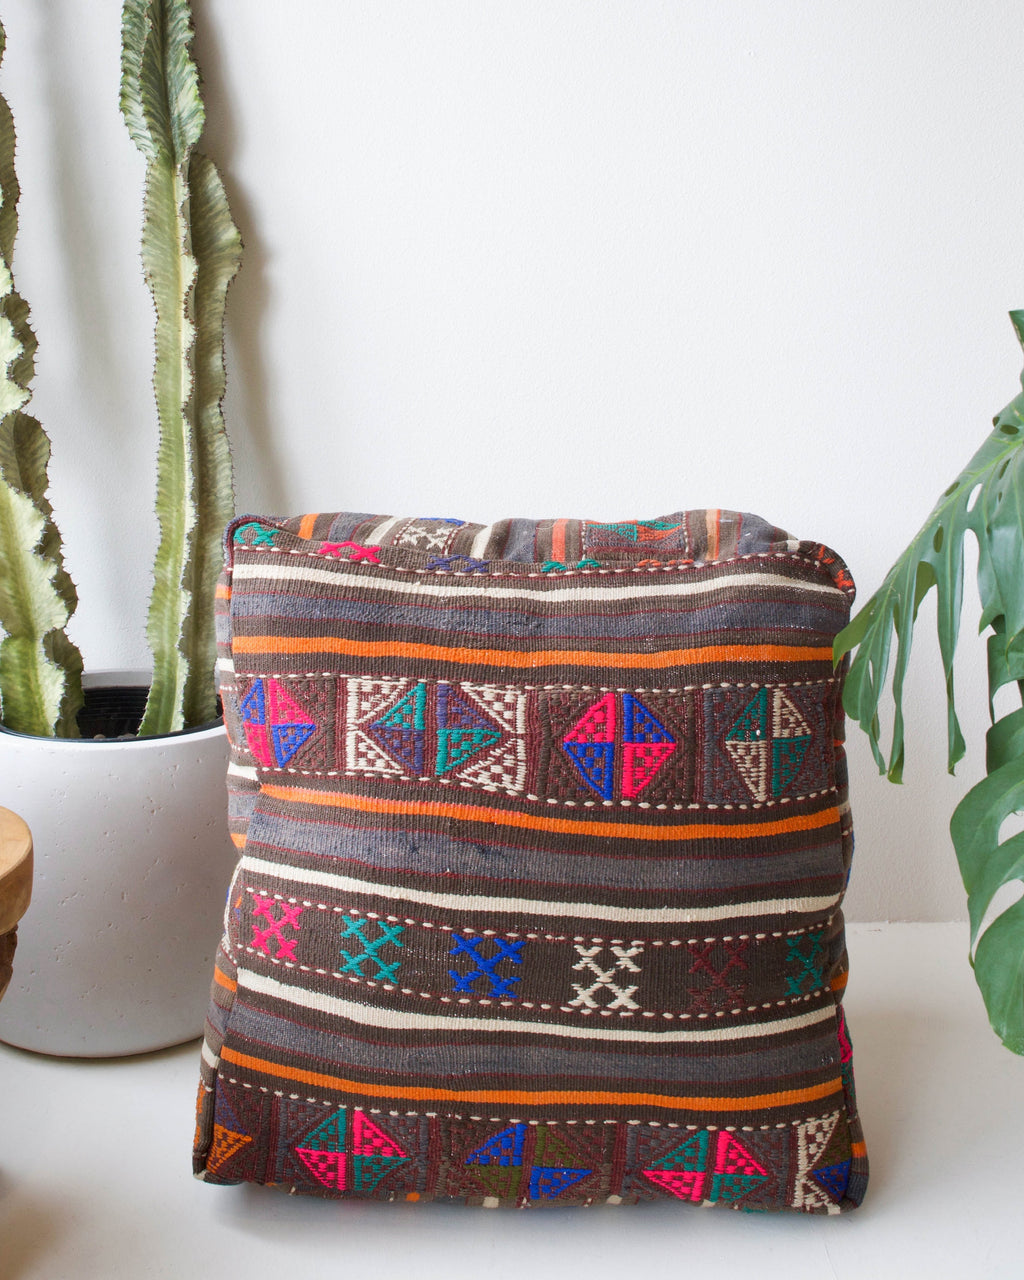 pillow, turkish pillow, kilim pillow, home decor, decorative pillow, sham, rug pillow, decor, home decor, pouf, floor cushion, cushion, Portland, rugshop, Oregon, Wild Shaman, ottoman